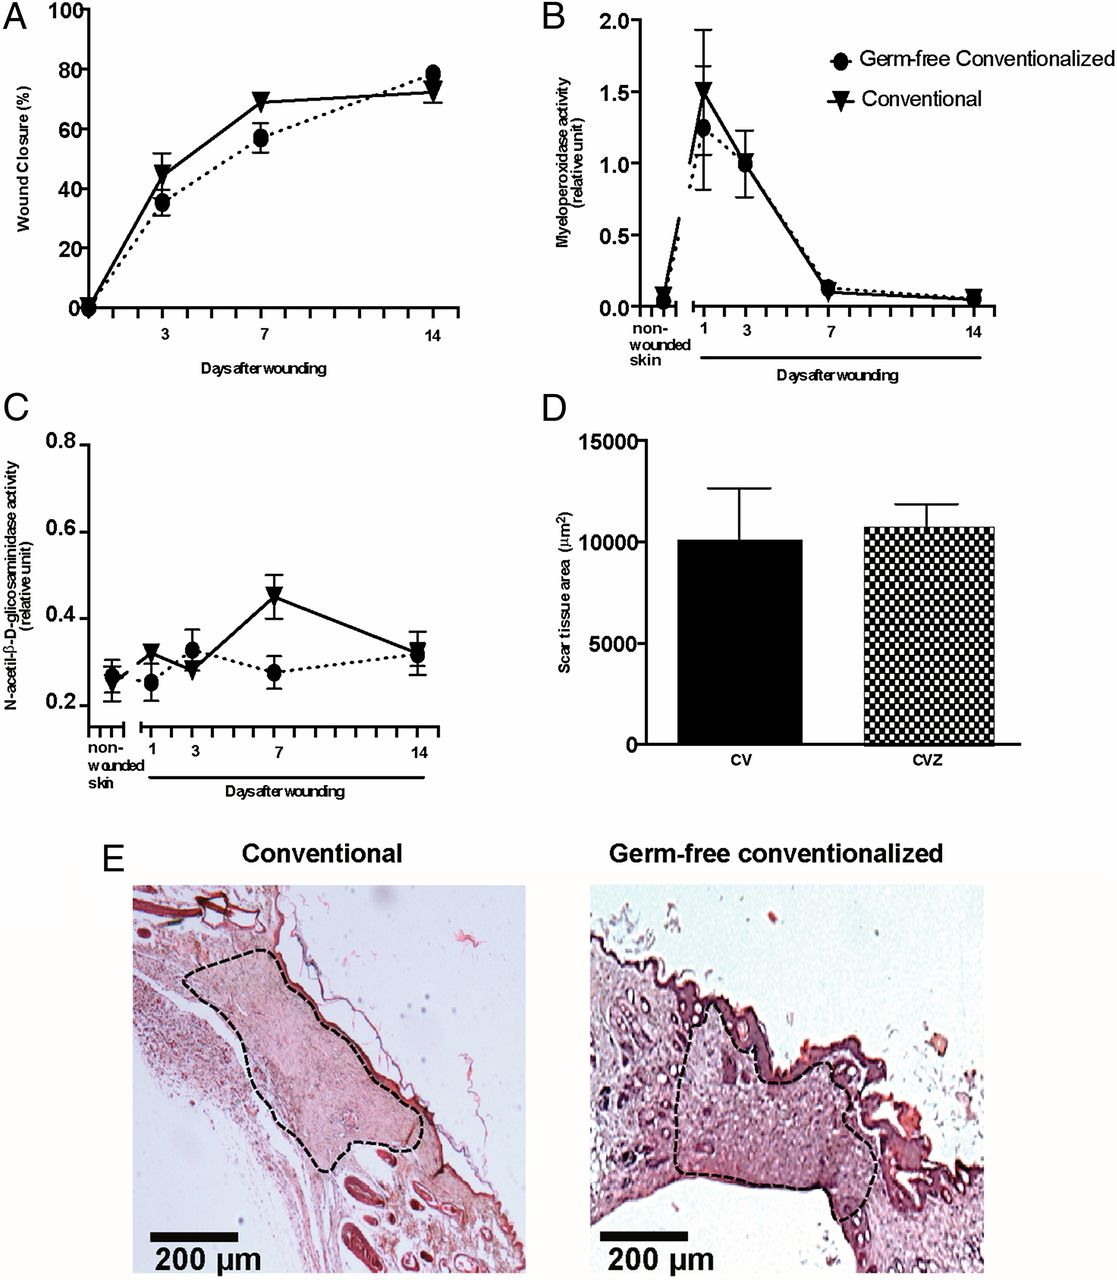 medium resolution of gf colonized mice restore wound healing to conventional mouse level